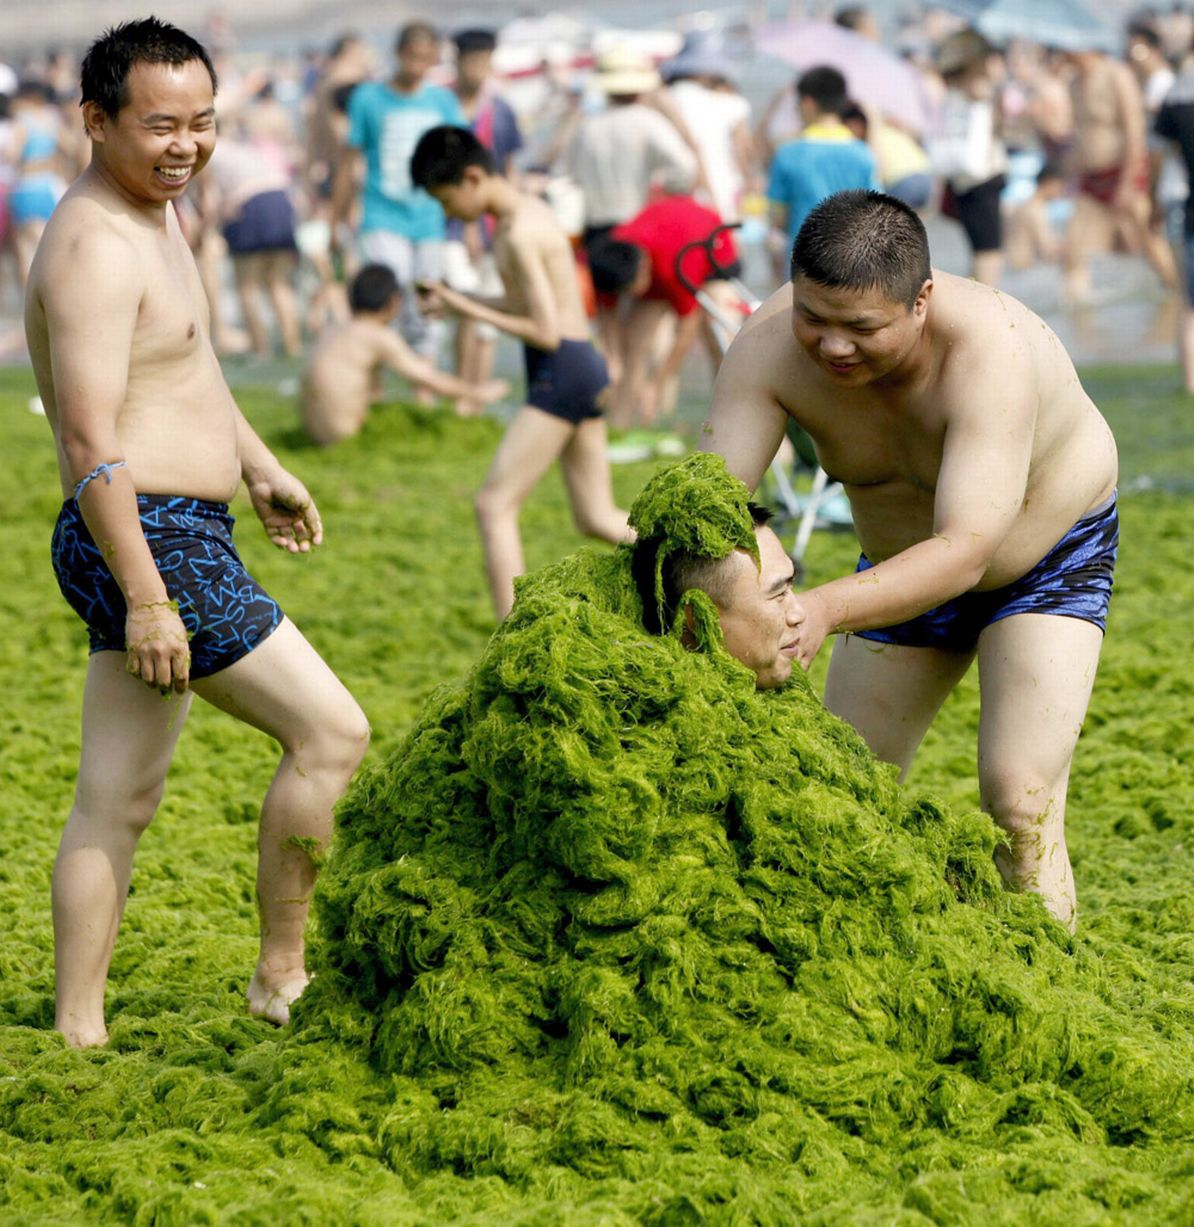 Qingdao - Algae Beach - China - Holiday - Covered in Algae